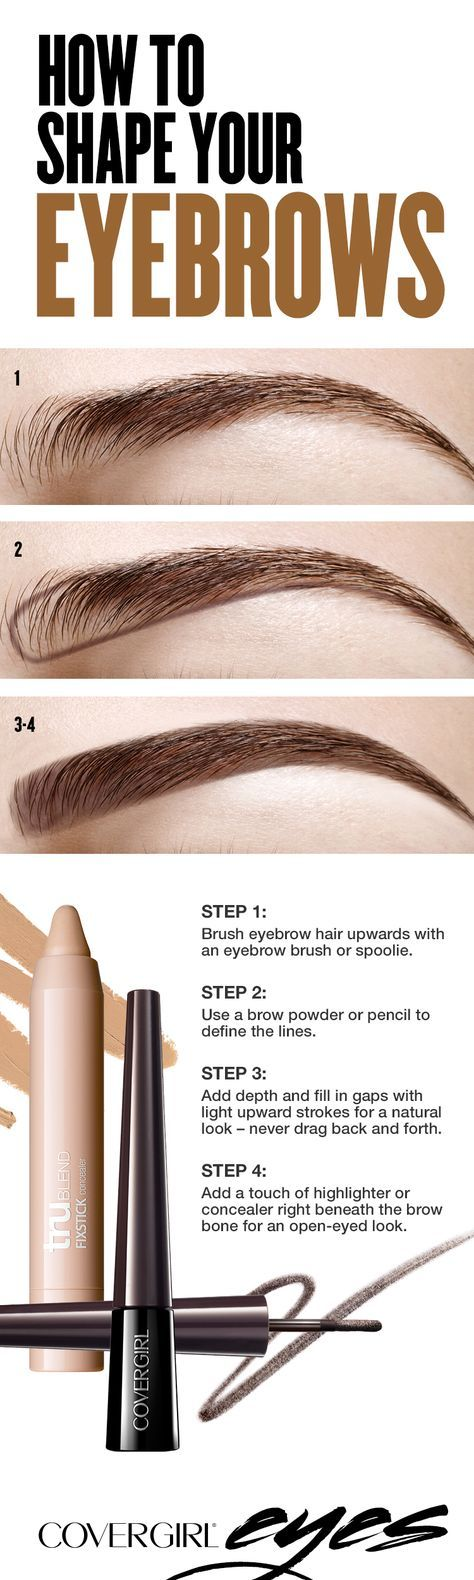 How To Do Eyebrows Step By Step Tutorial and Ideas for Shaping, Growing Out, Crazy, Fill In and Thicker Eyebrows.  How To Do Plucking, Perfect Microblading That Is On Fleek.  Natural Makeup Tips and Before and After Pics For Round Face Women, Blonde And Brunette Women, With Green Eyes, Blue Eyes, Brown Eyes, and Hazel Eyes.